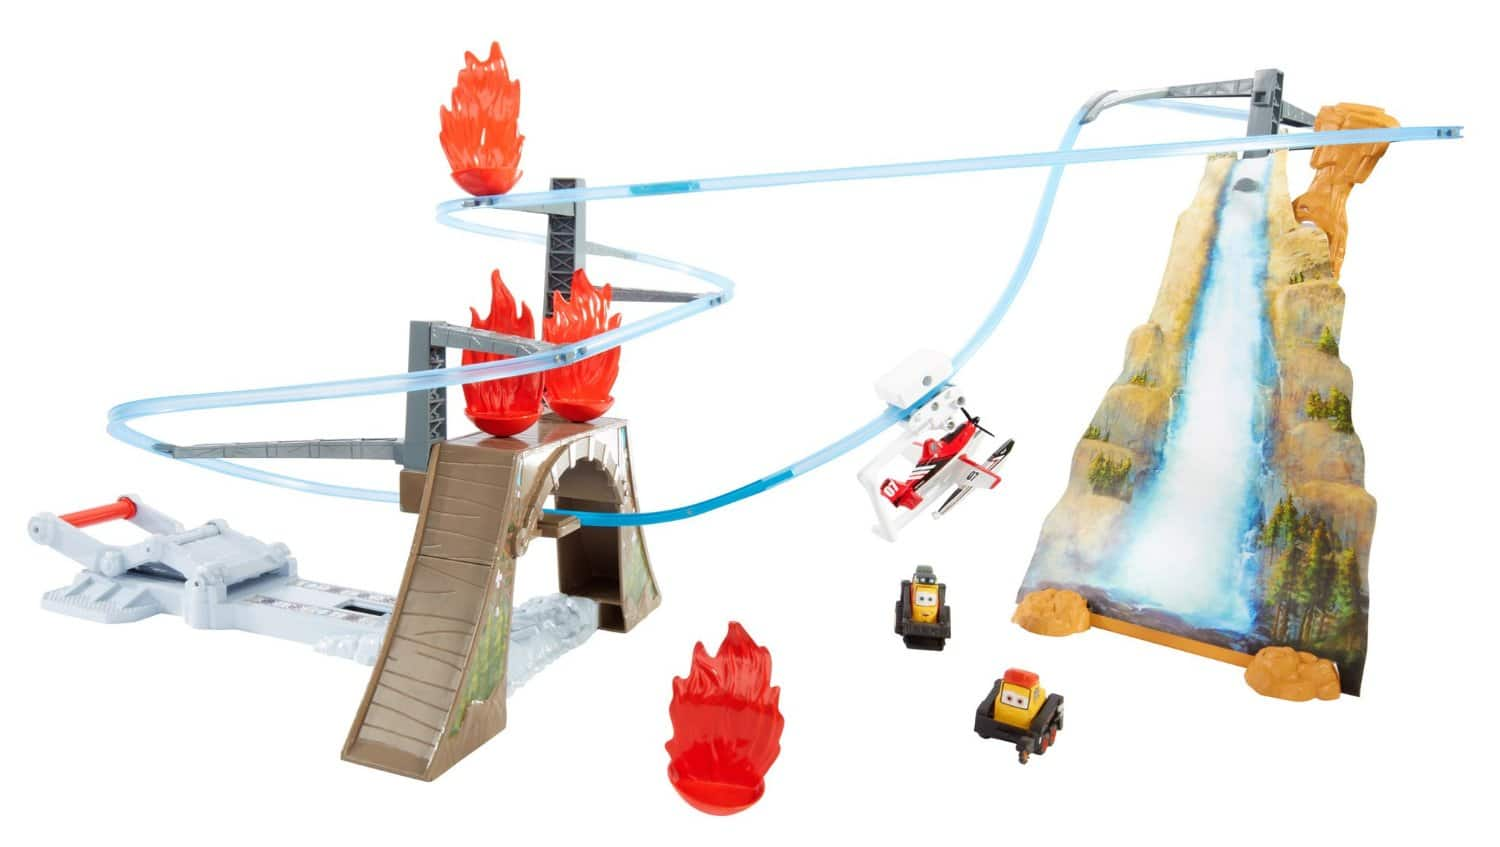 Disney Planes: Fire & Rescue Piston Peak Trackset for $10 (Reg. $35) @ Walmart & Amazon